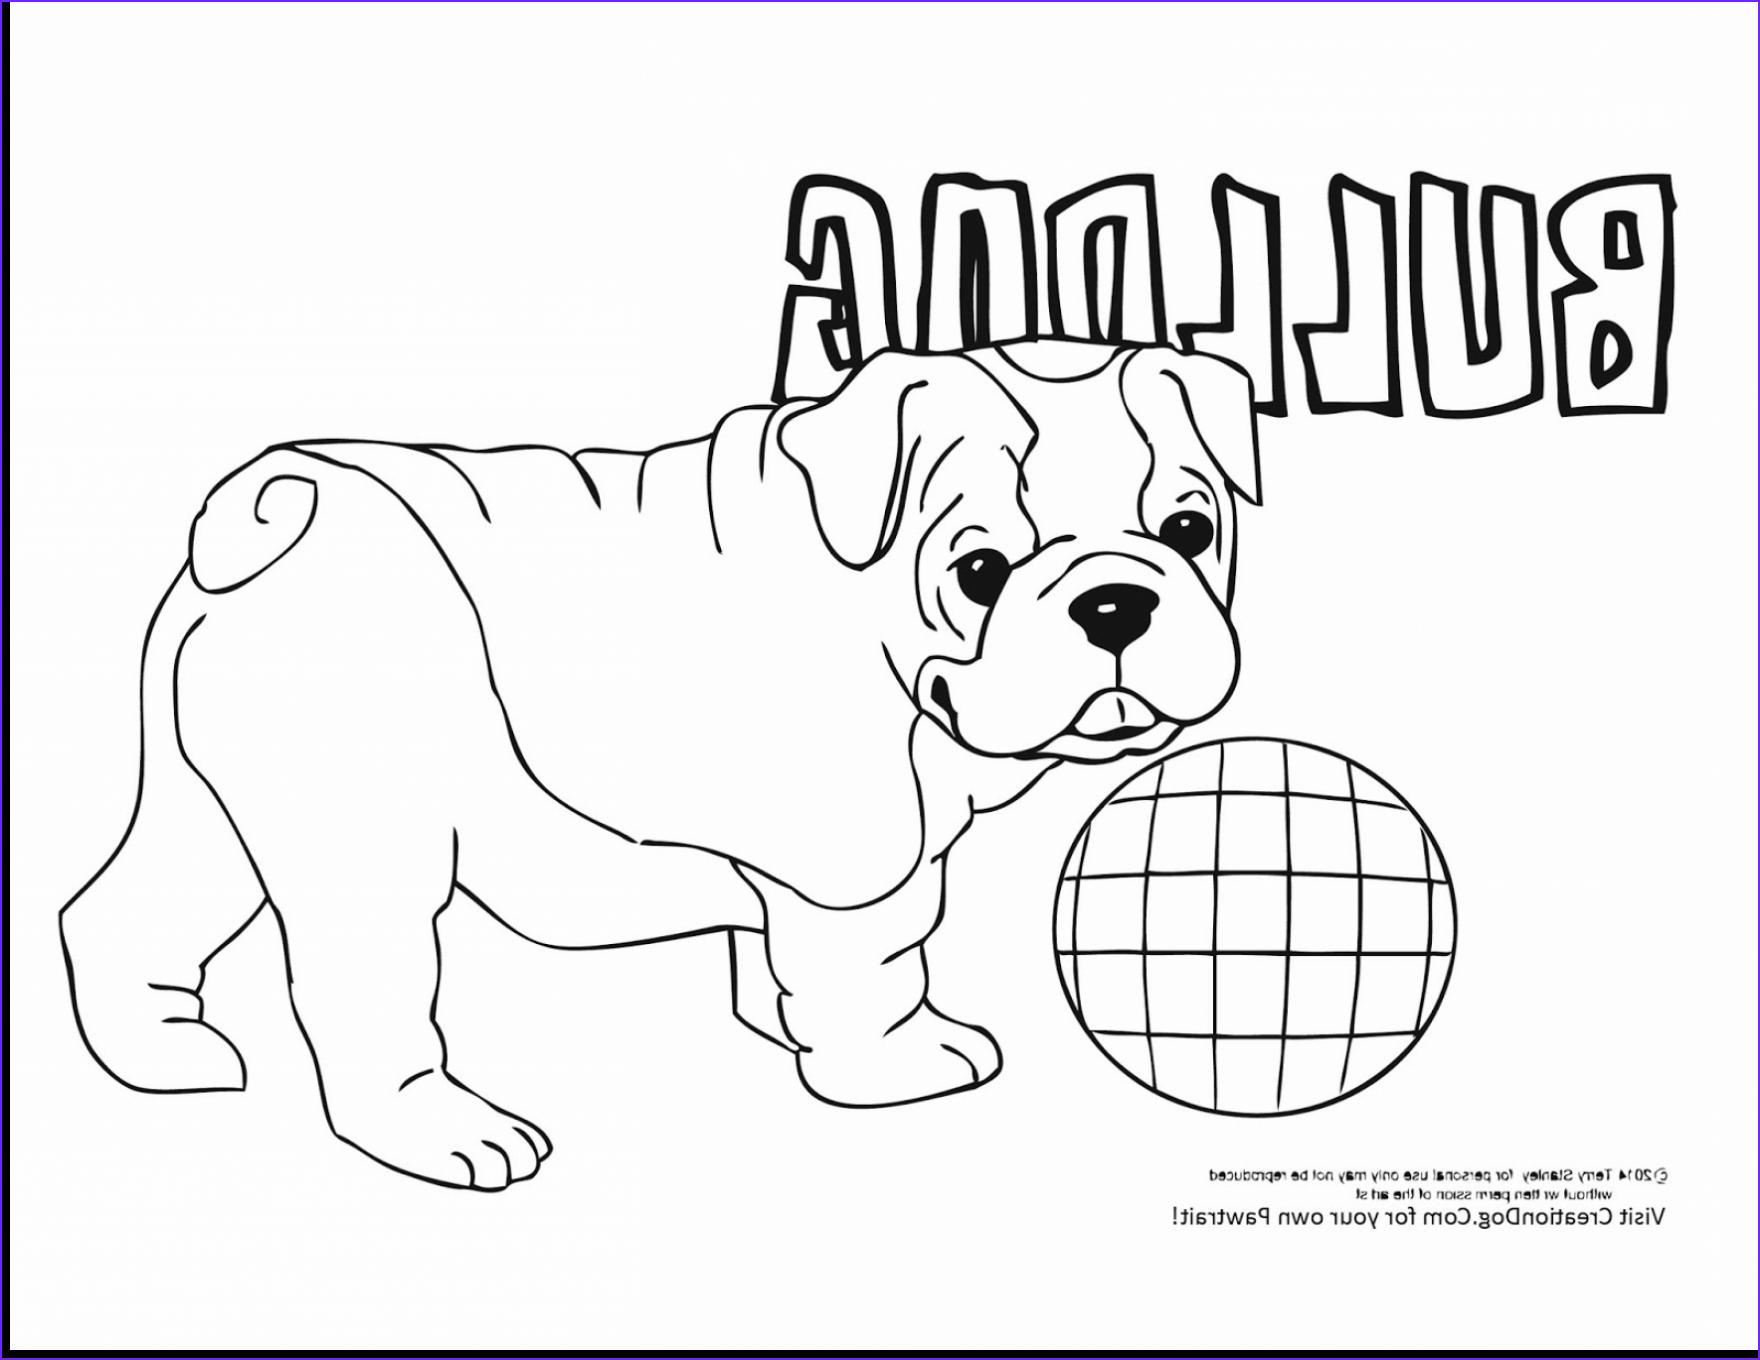 Bull Dog Coloring Pages Inspirational Collection Bulldog Coloring Pages Coloringsuite